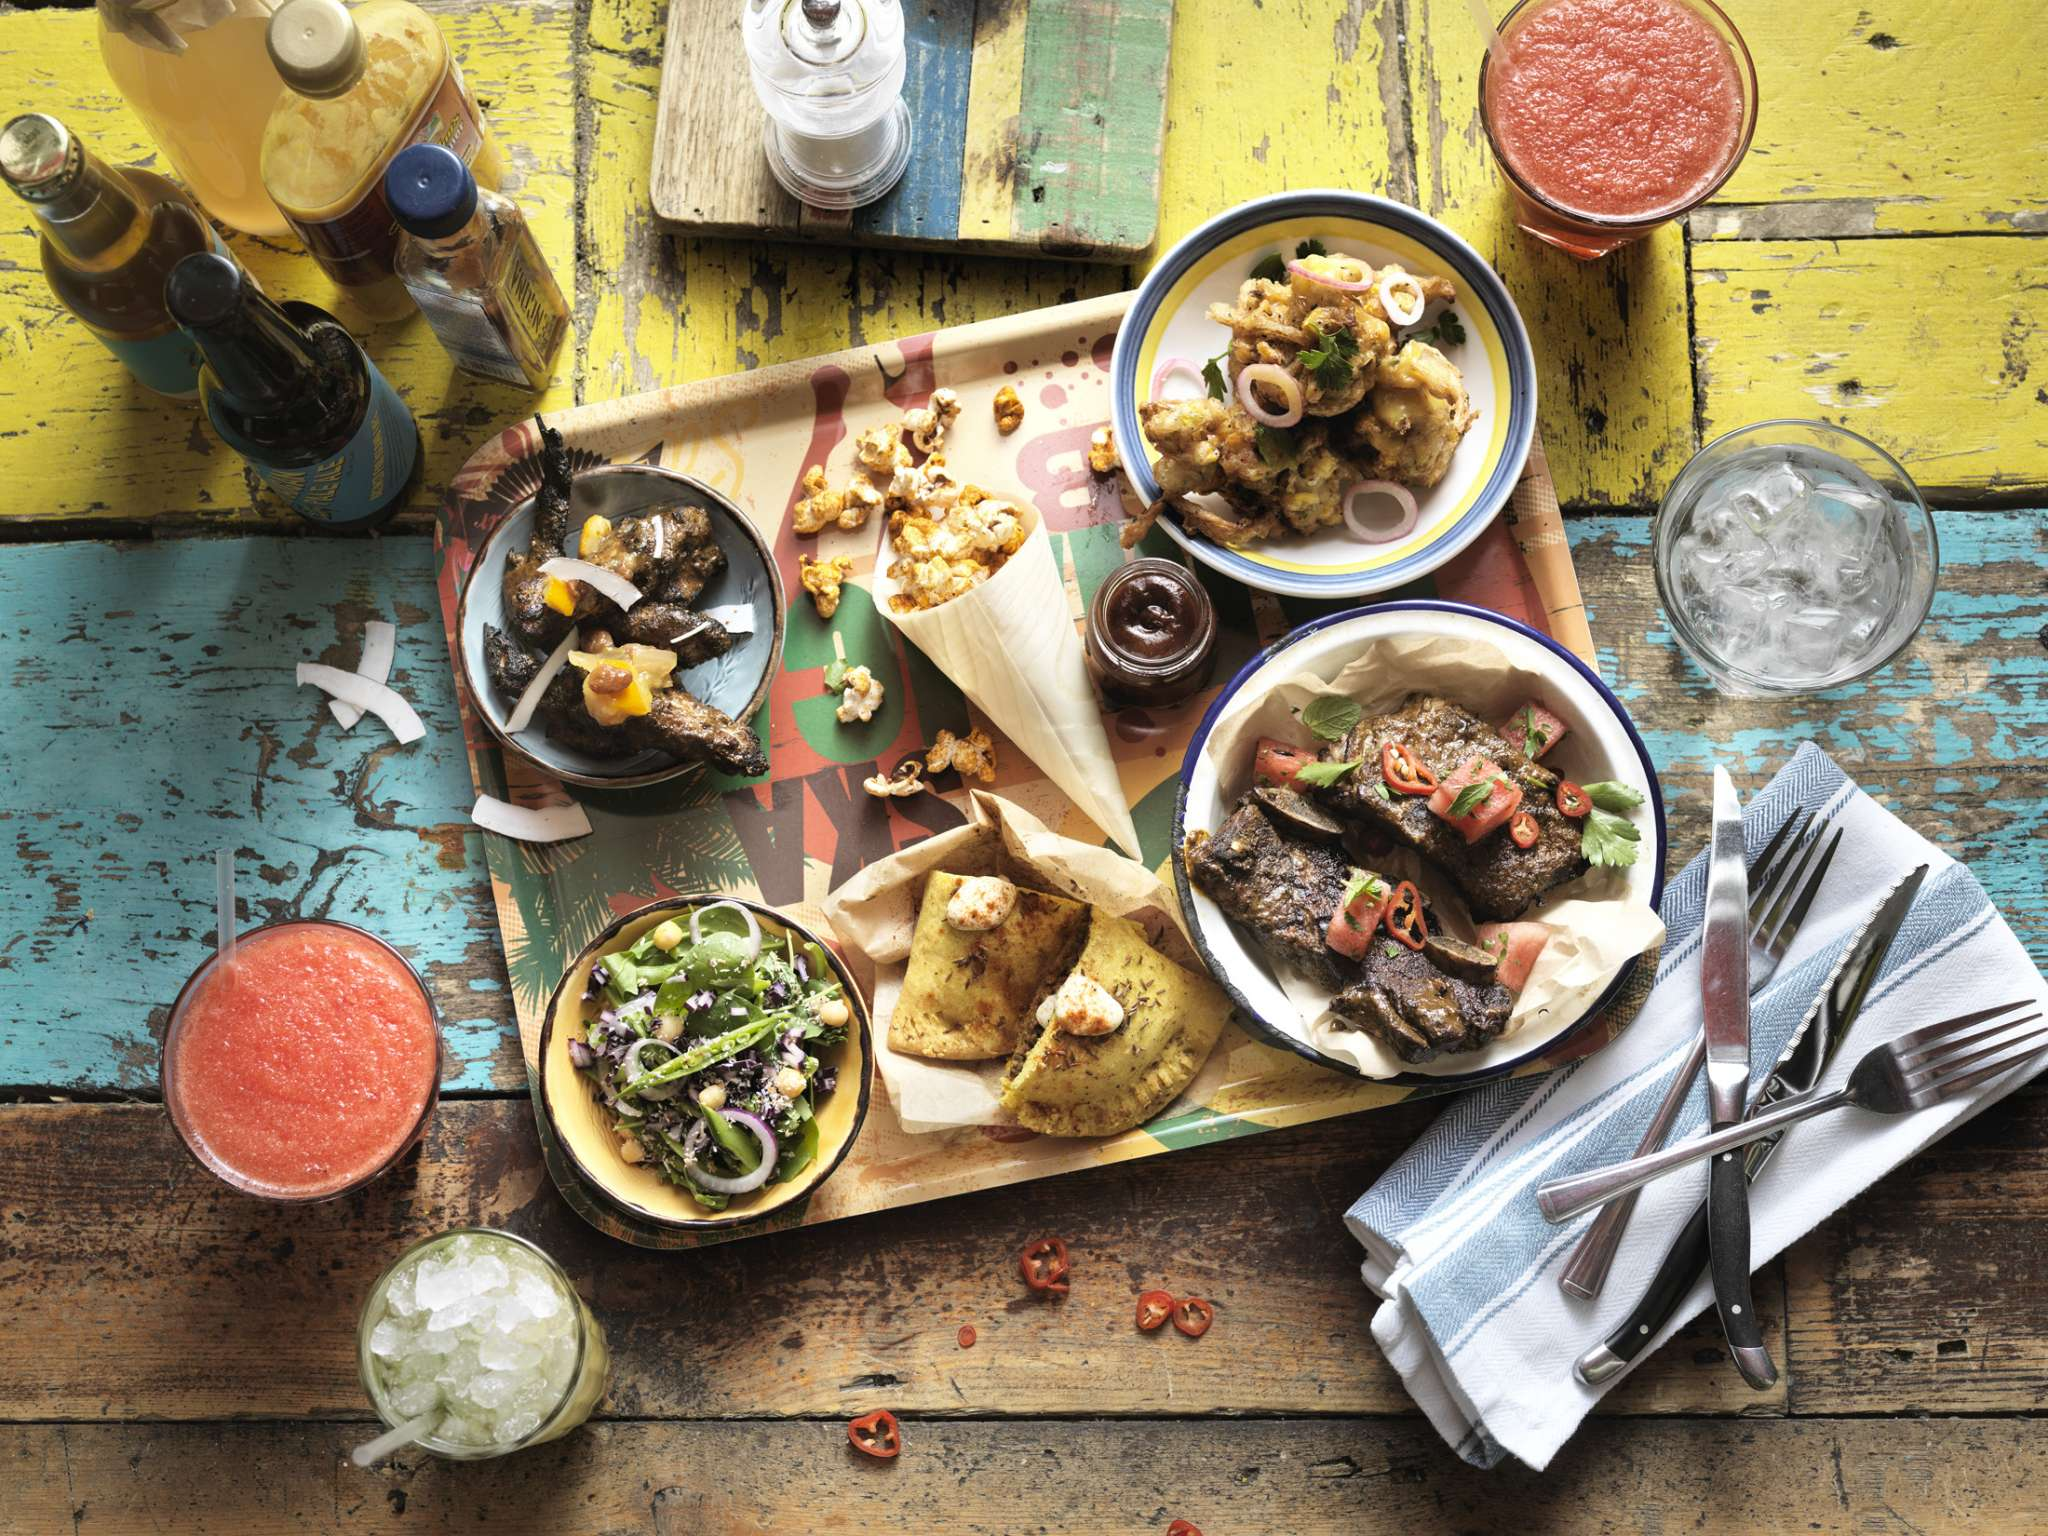 HAVE YOURSELF A CARIBBEAN CHRISTMAS AT TURTLE BAY